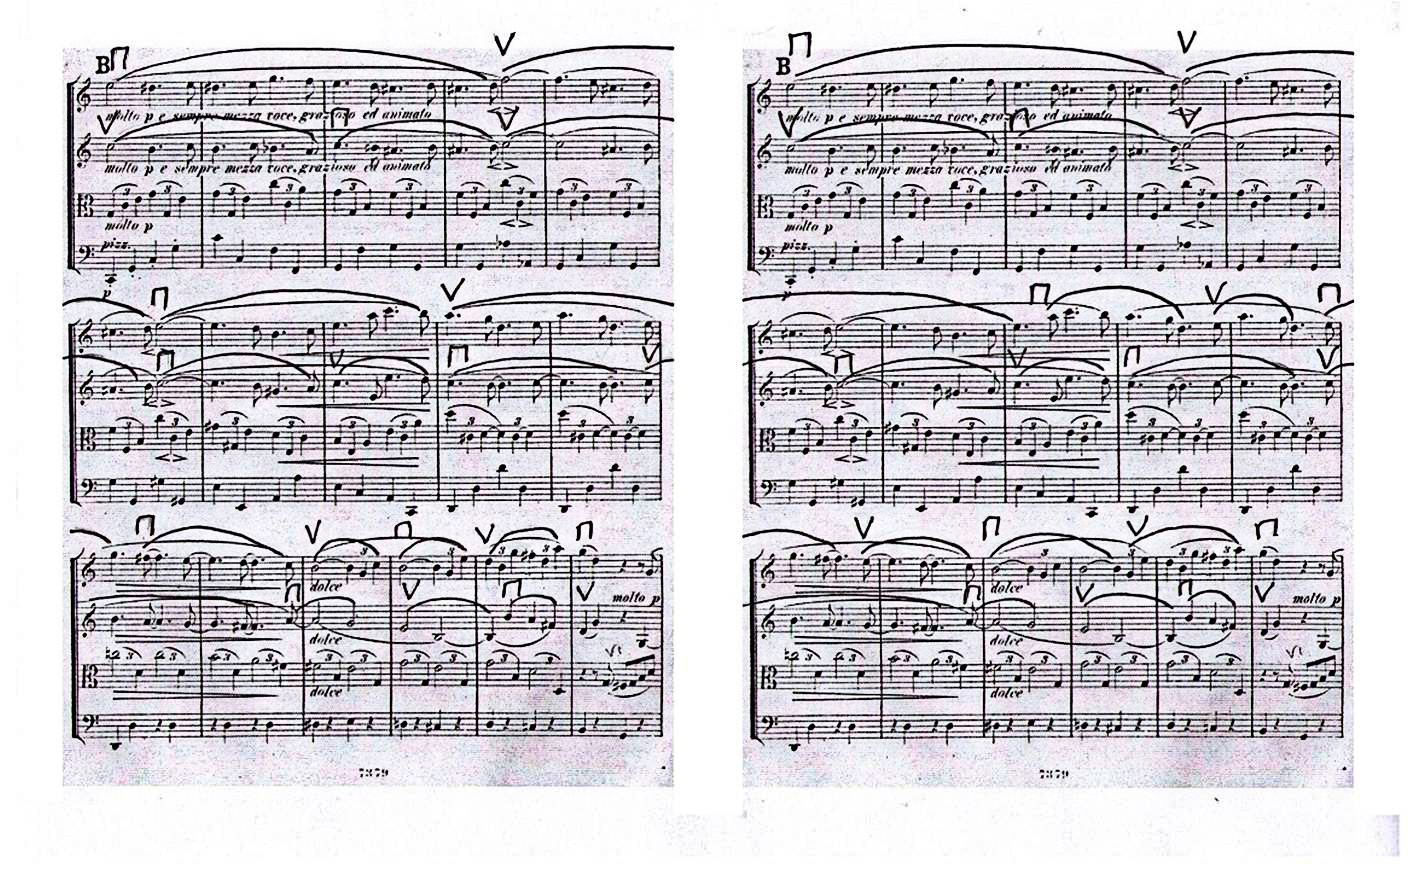 Figure 12: Johannes Brahms: String Quartet op. 51 no. 2, first movement, bars 46–61. First Edition (1873), with bowings added.